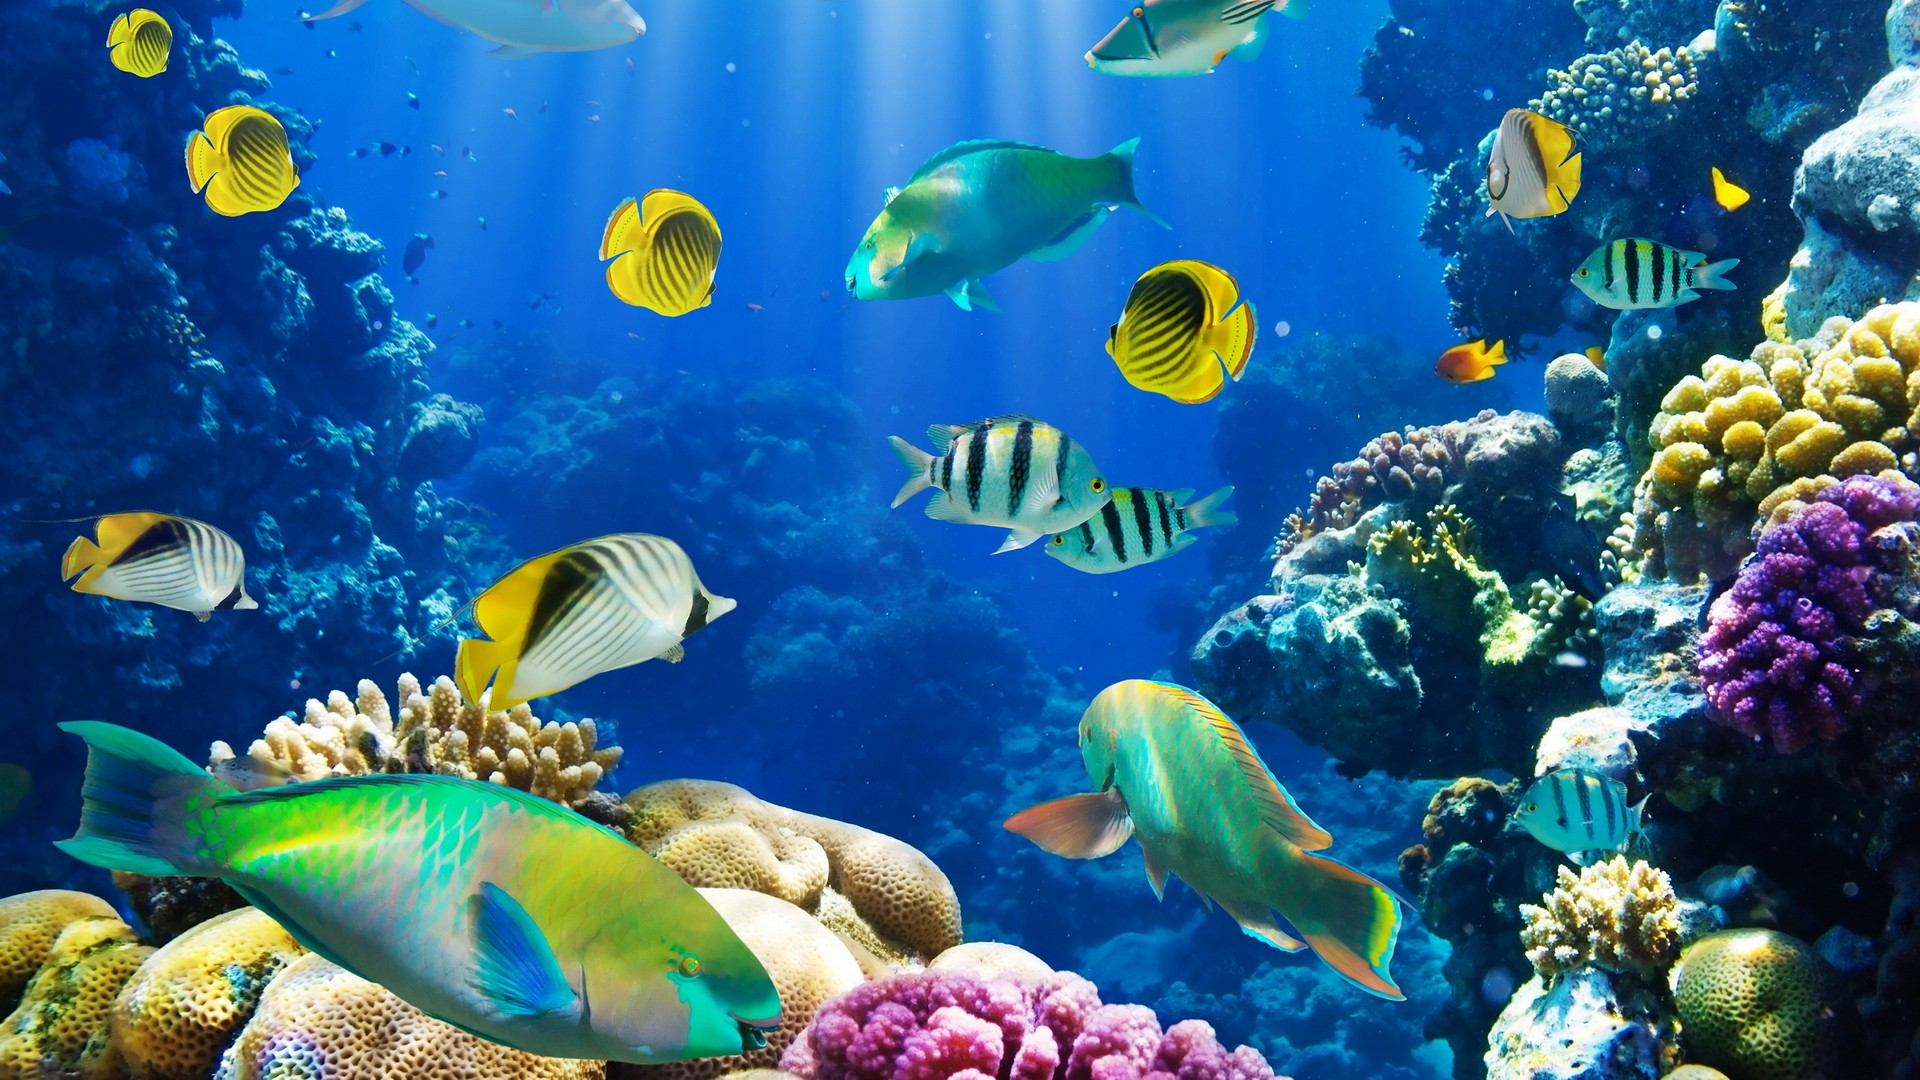 wallpaper Live Fish Backgrounds hd wallpaper background desktop 1920x1080